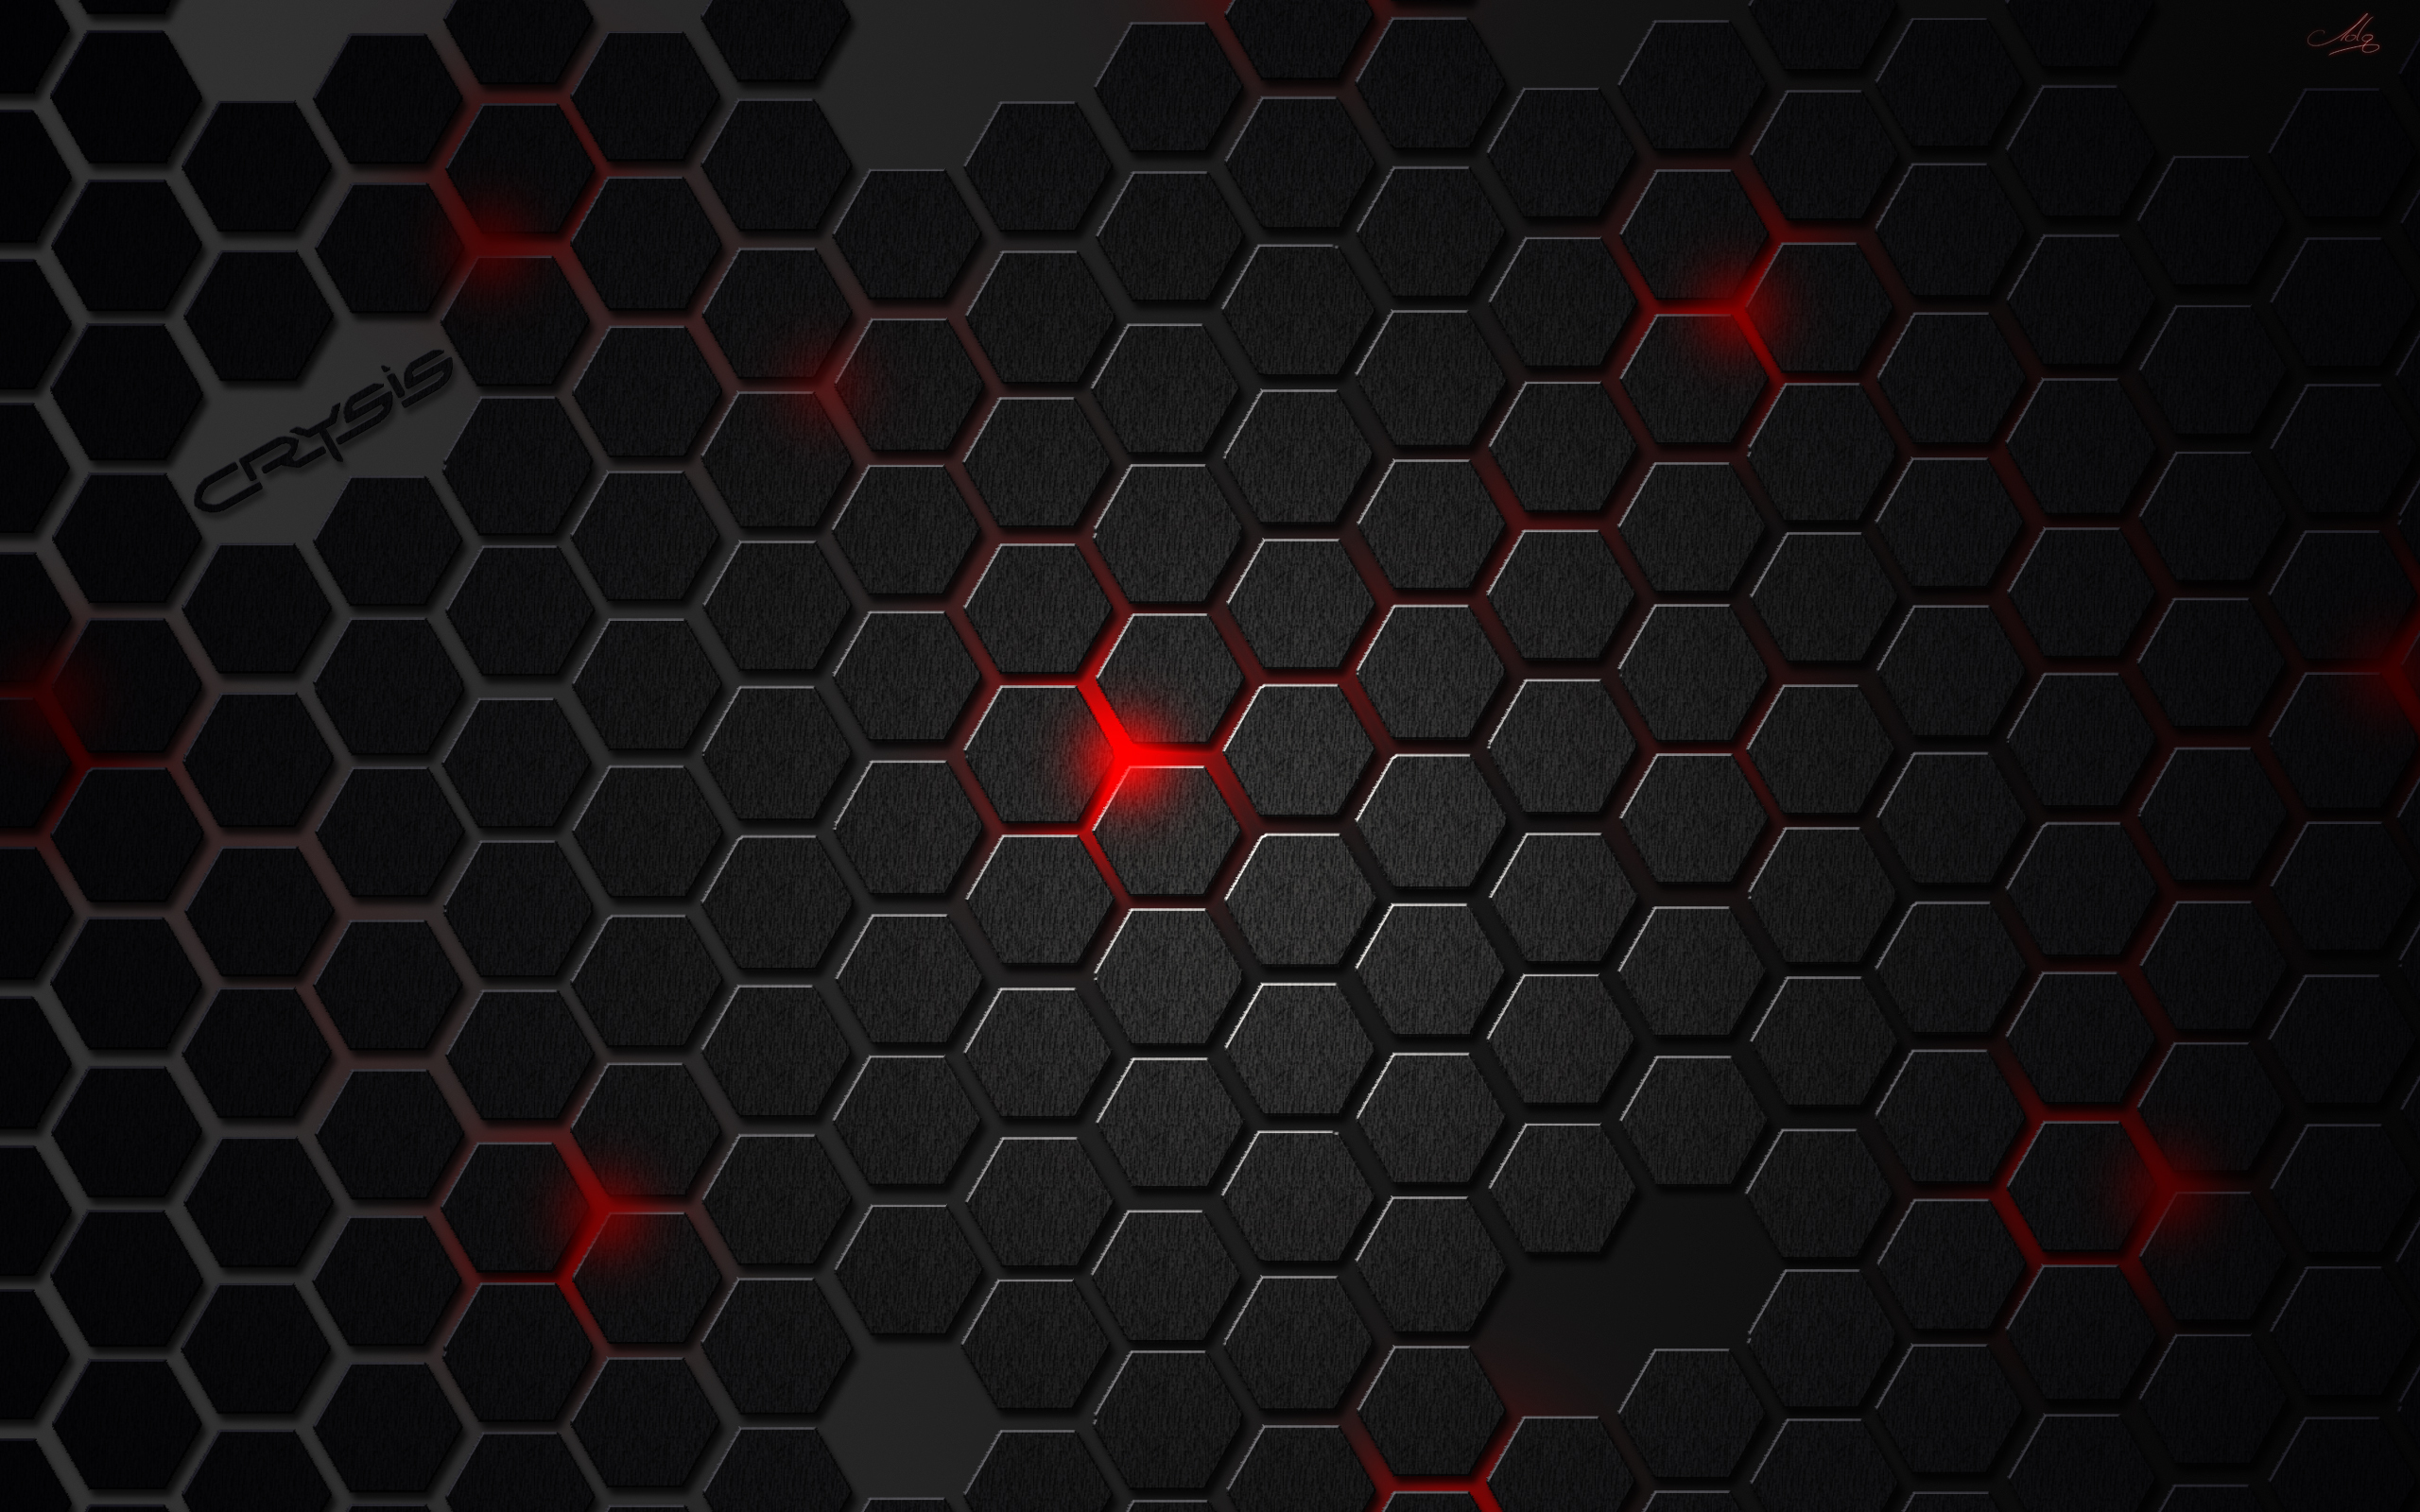 red and black wallpaper designs 8 cool wallpaper